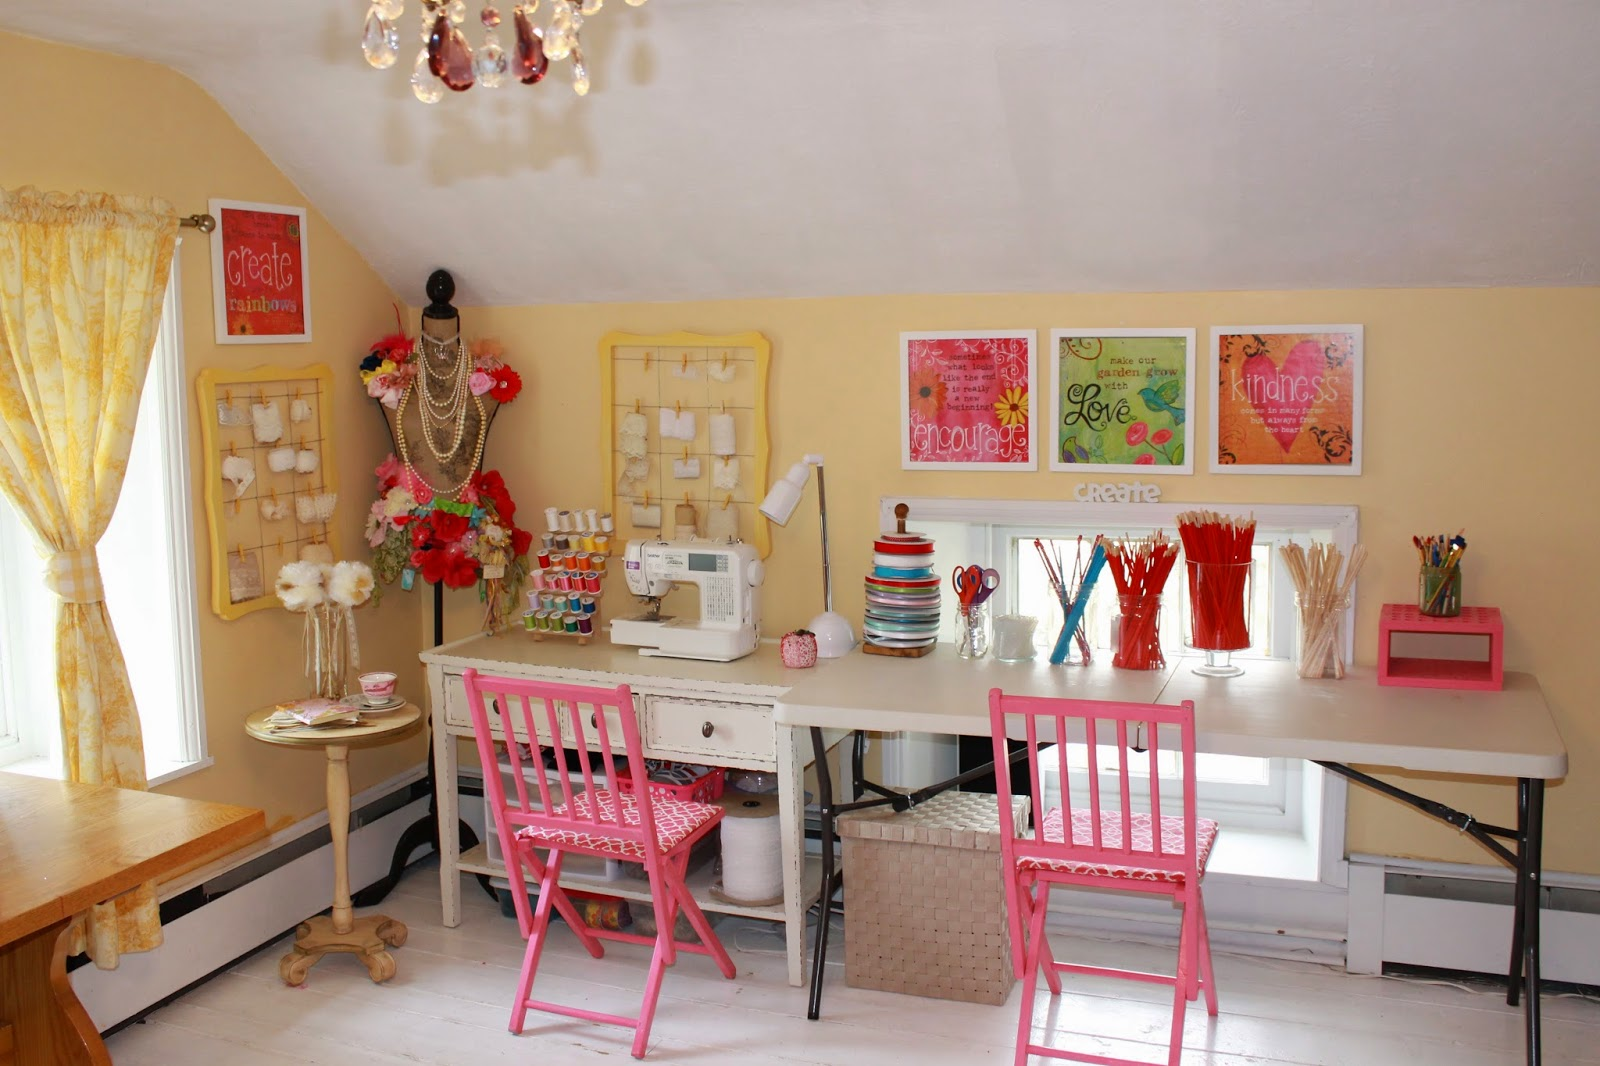 Pretti Mini Blog: 10 Ways To Organize Your Craft Room Or